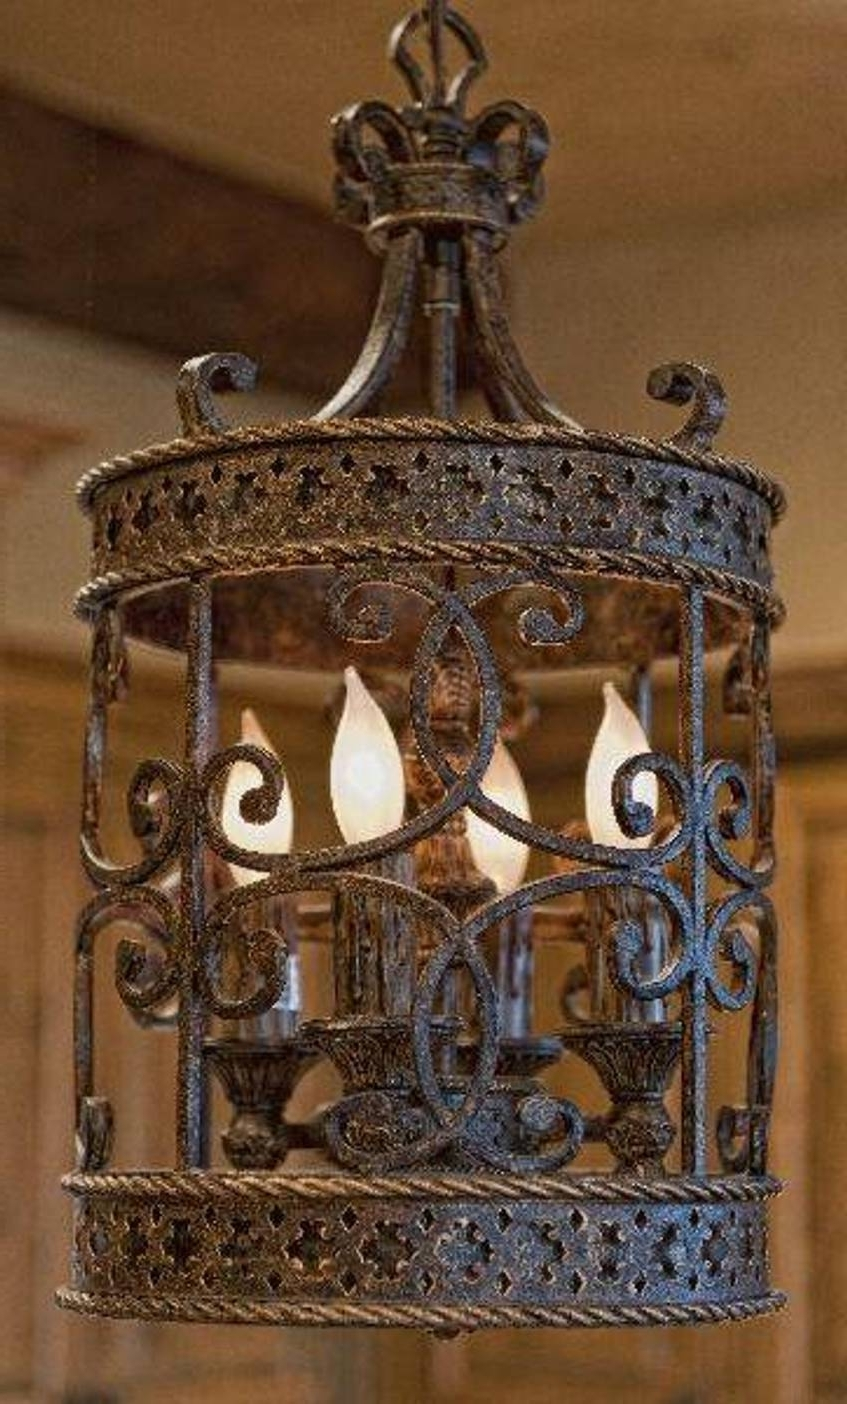 Newest Chandelier: Astonishing Cast Iron Chandelier Large Wrought Iron Pertaining To Large Iron Chandeliers (View 11 of 15)